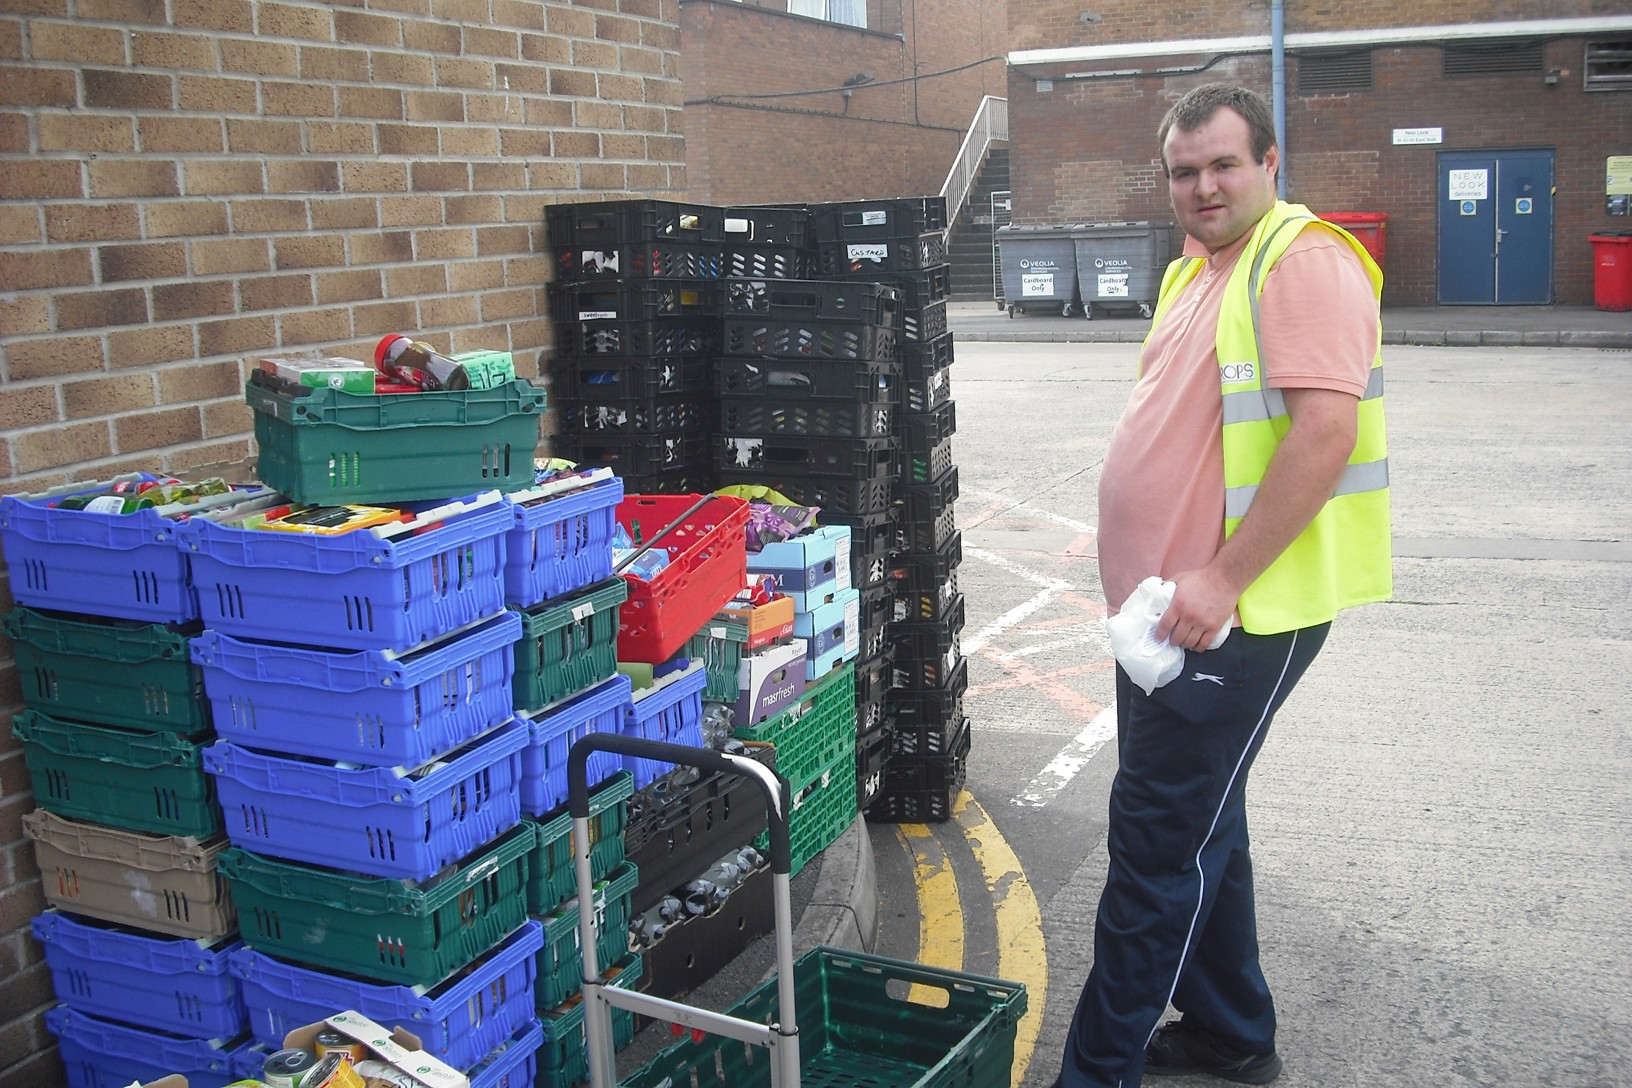 Trainee working at a foodbank, loading up boxes of donated goods